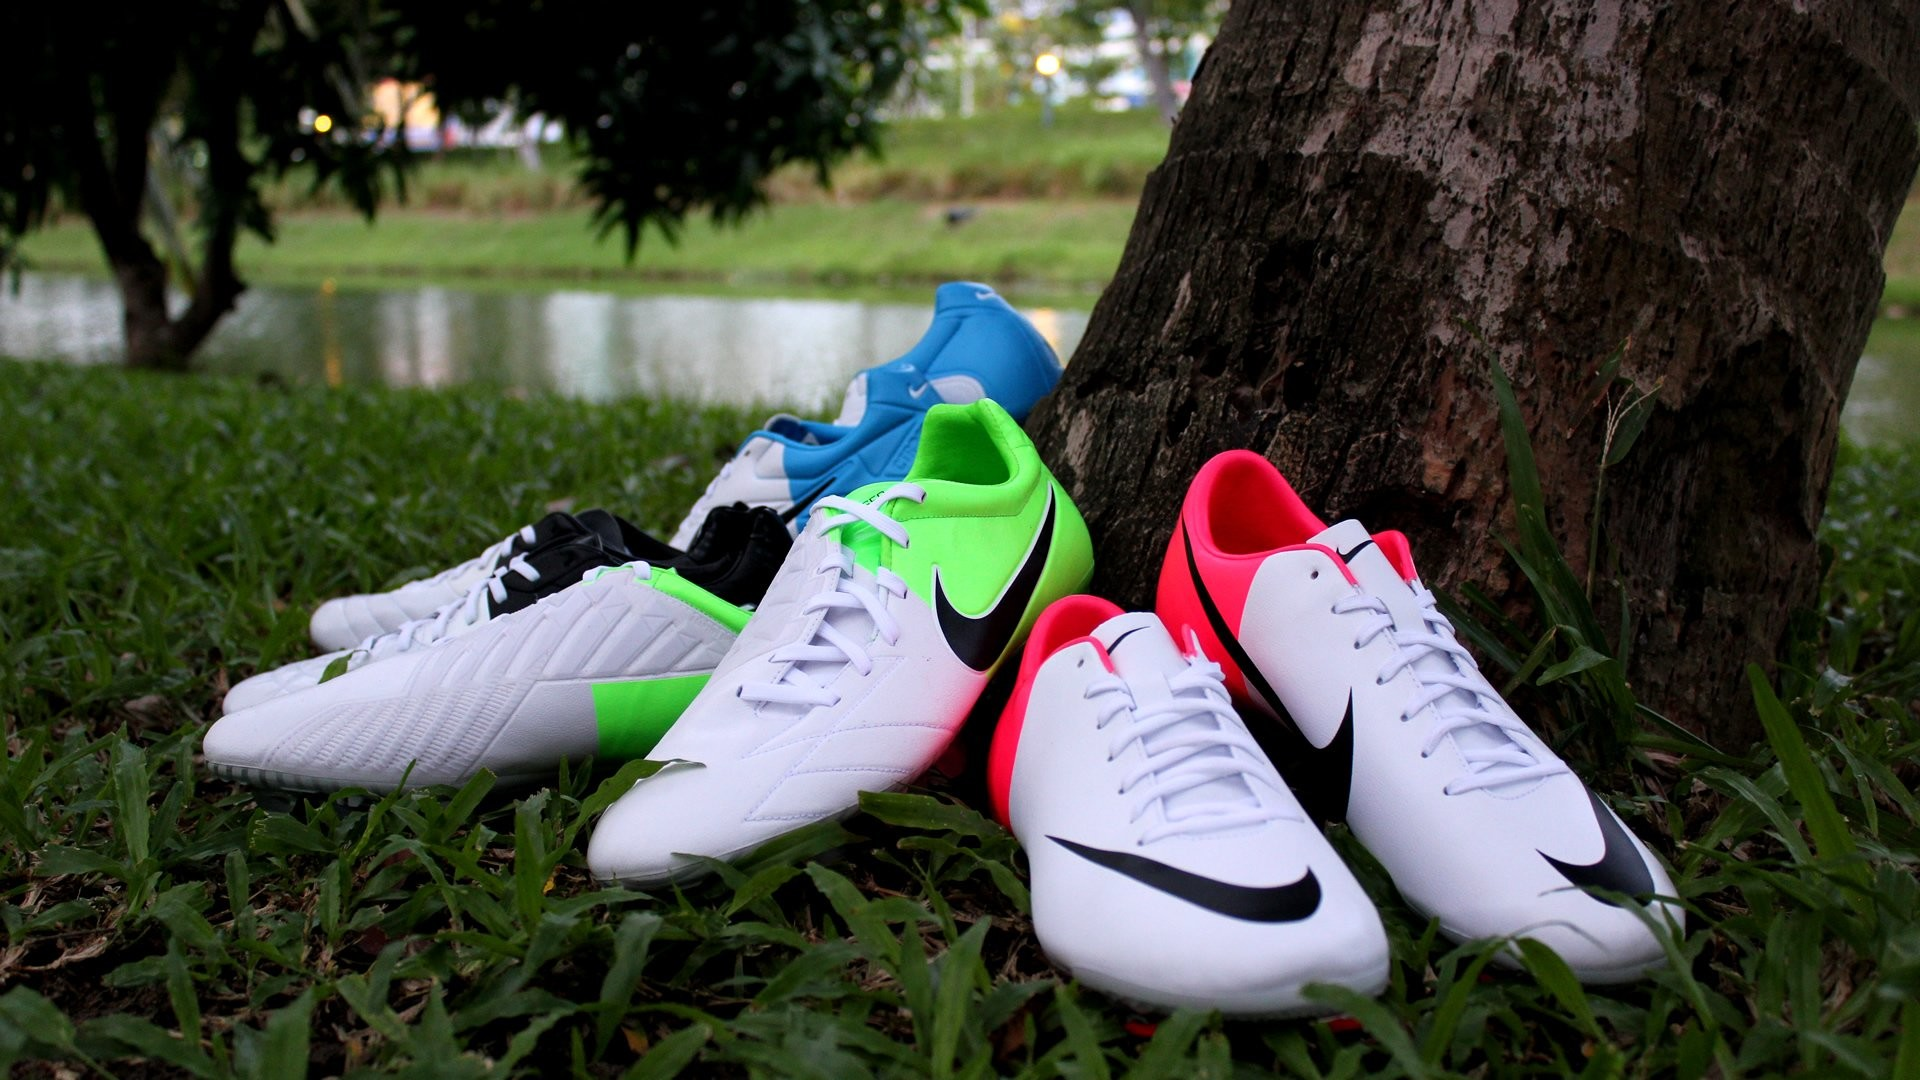 1920x1080 Football Boots